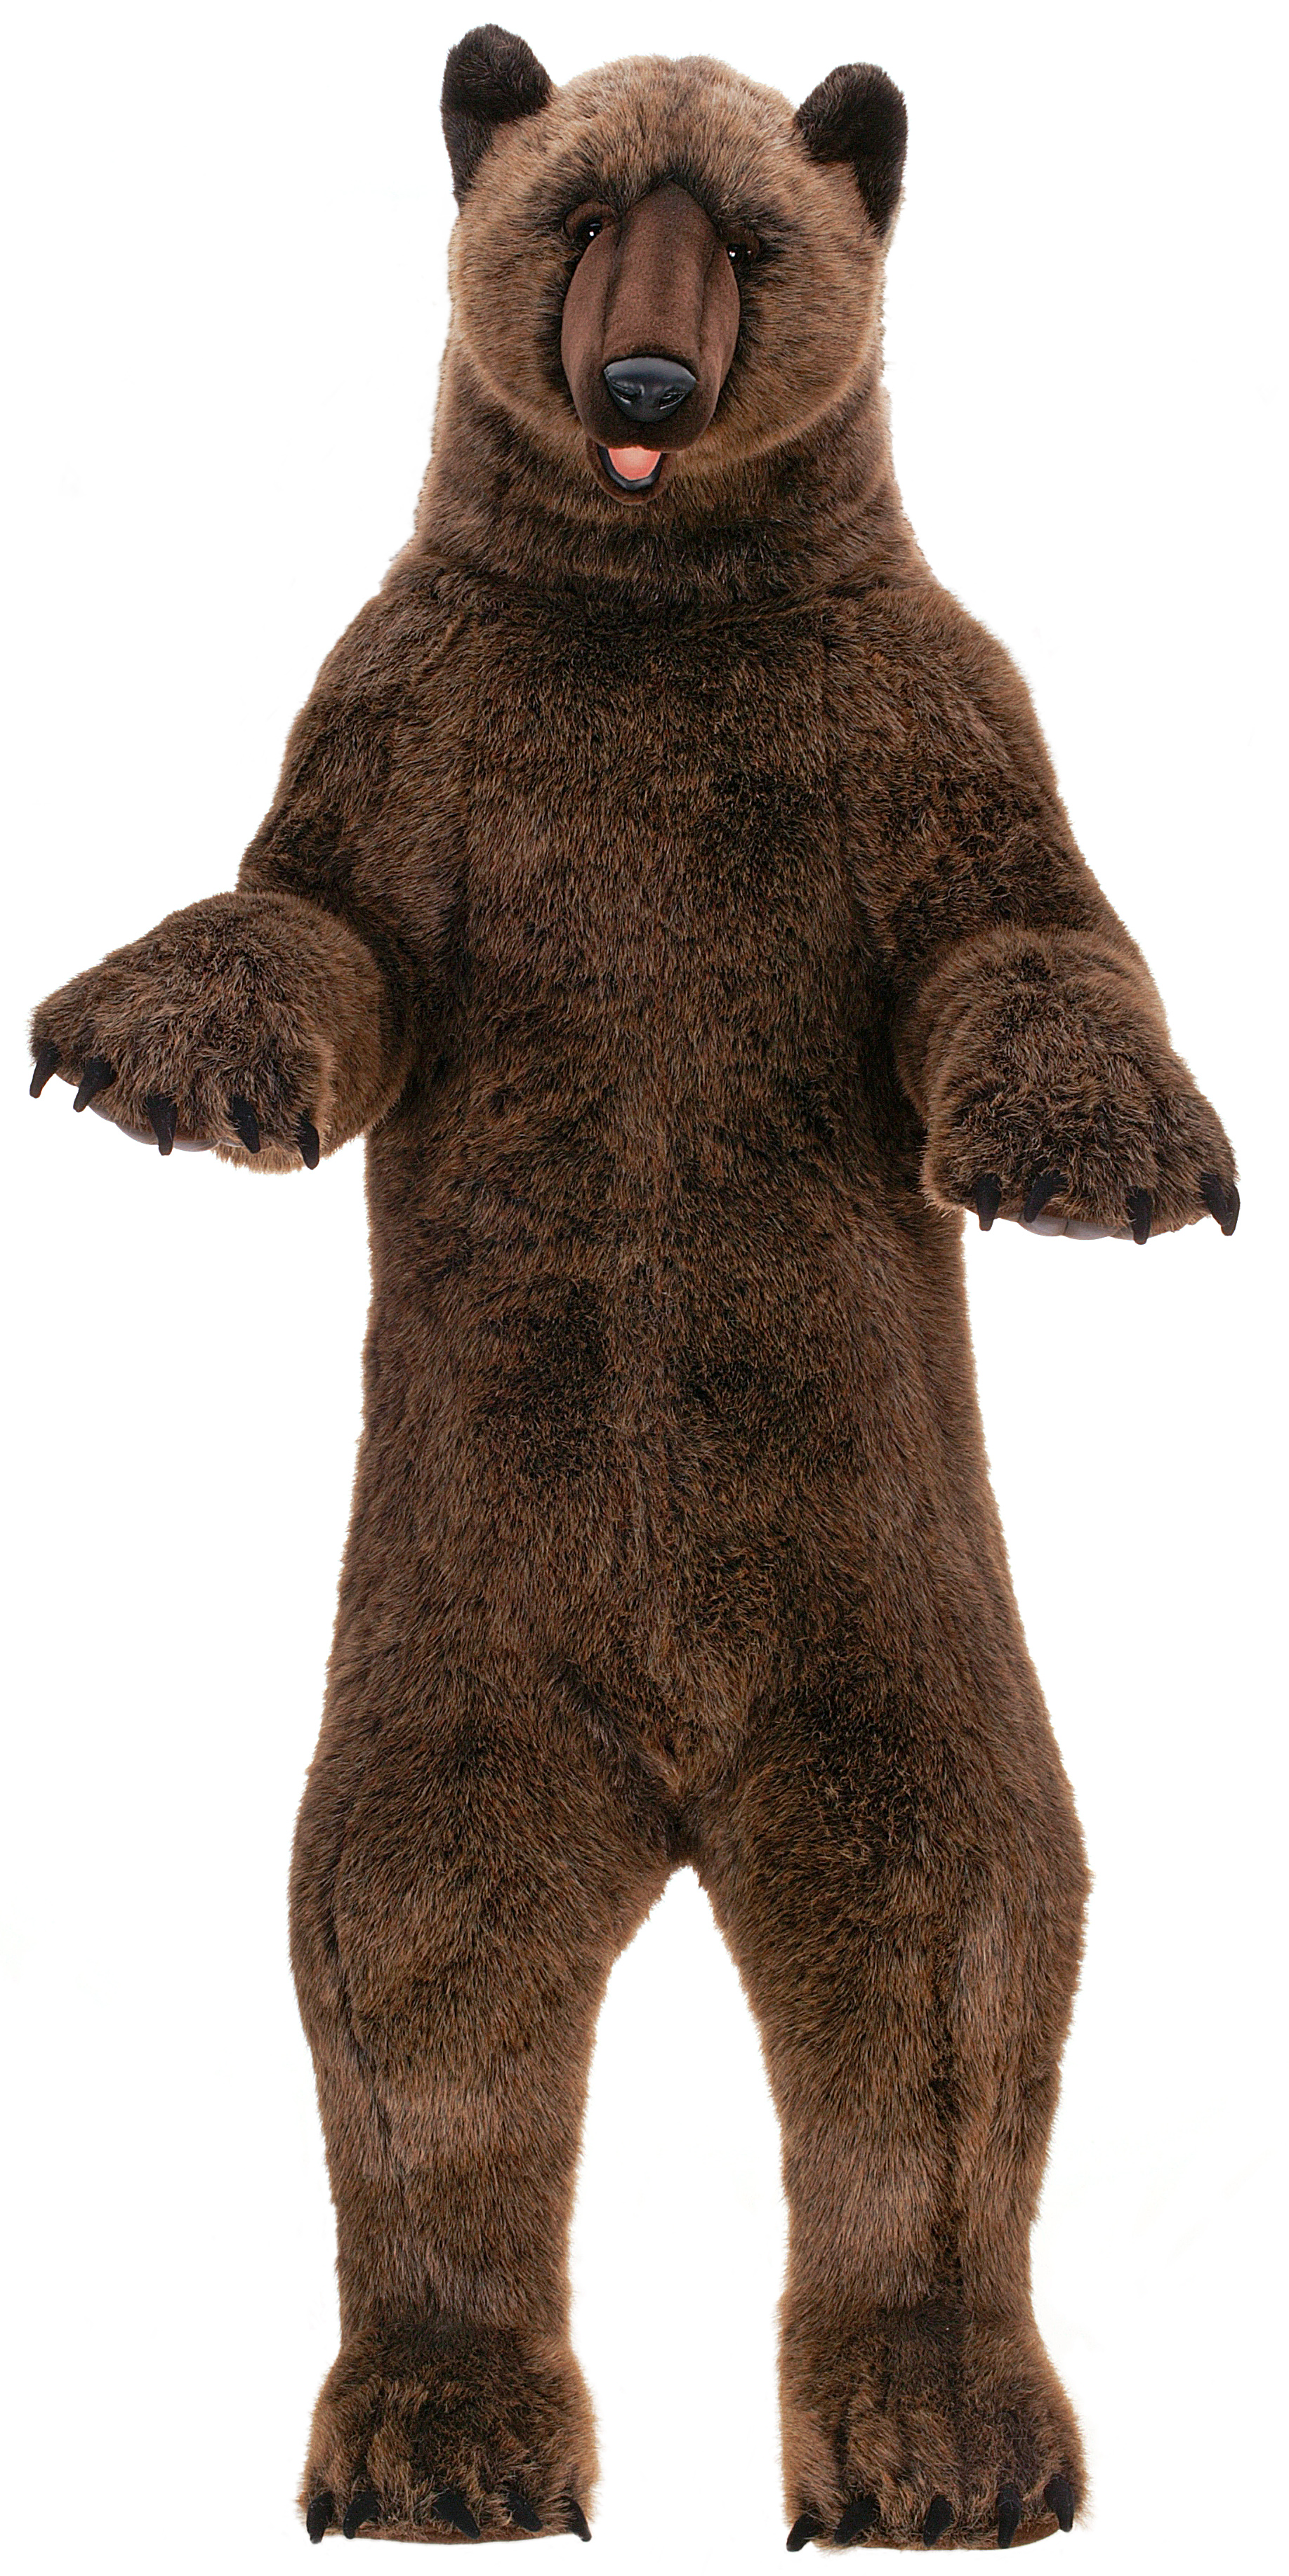 60 Quot Young Grizzly Bear Stuffed Animal